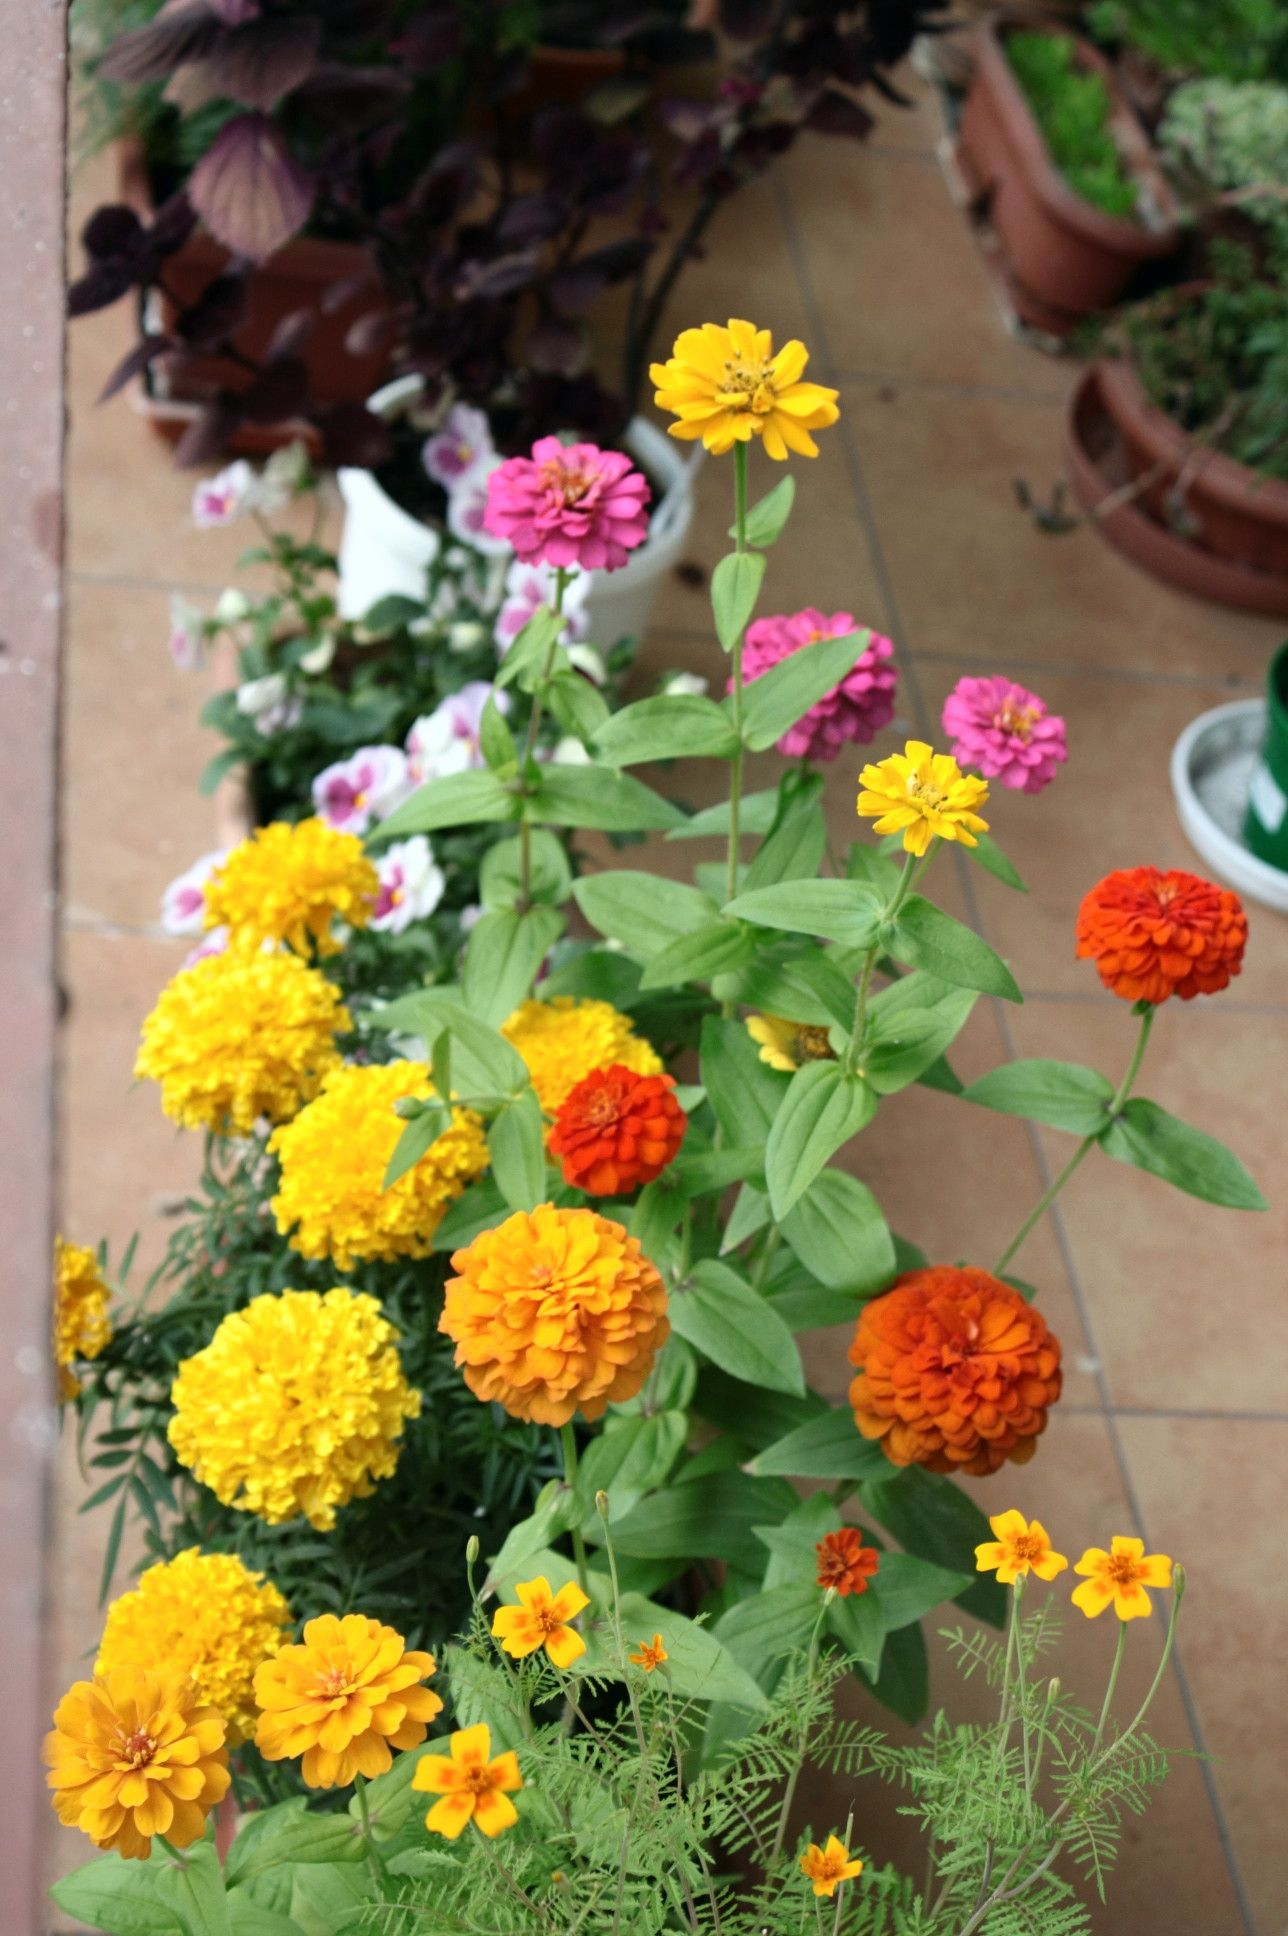 Pin By Halina Kubacka On Kompozycje Na Balkon Container Gardening Container Gardening Plants Container